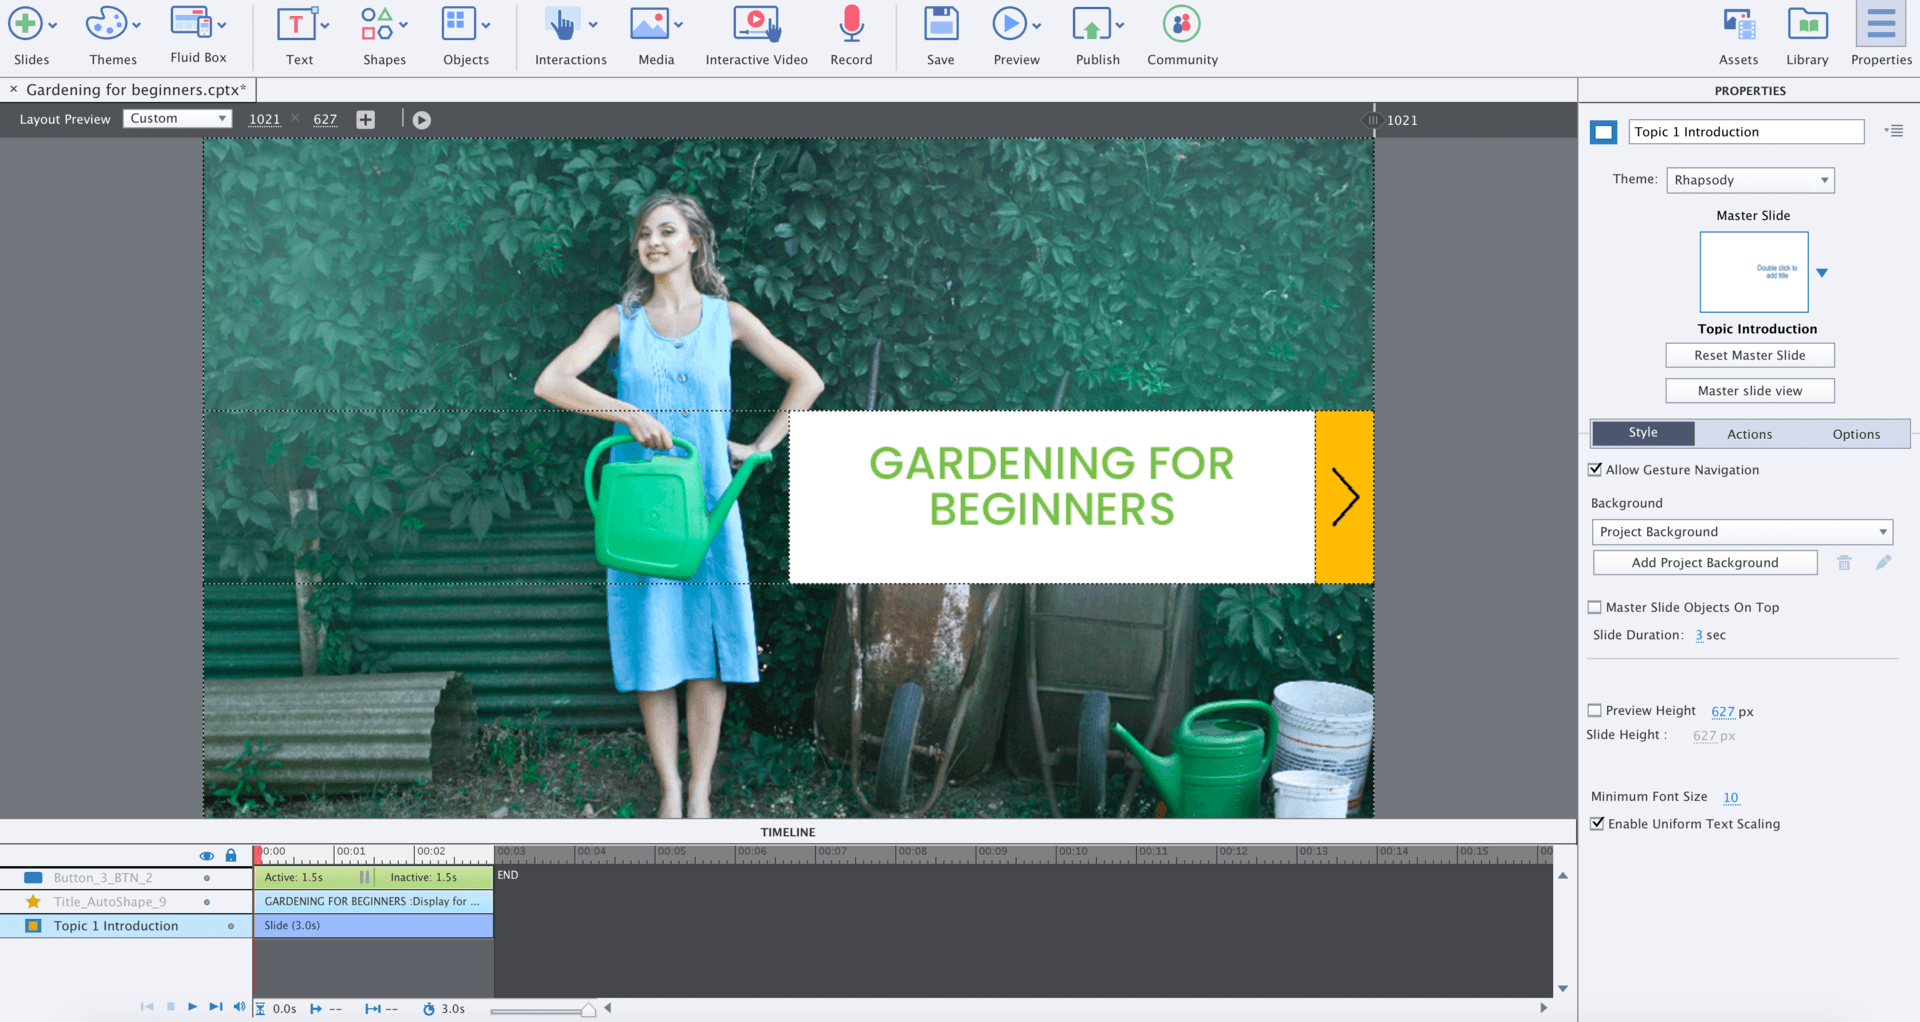 Adobe Captivate edit mode showing gardening course cover page